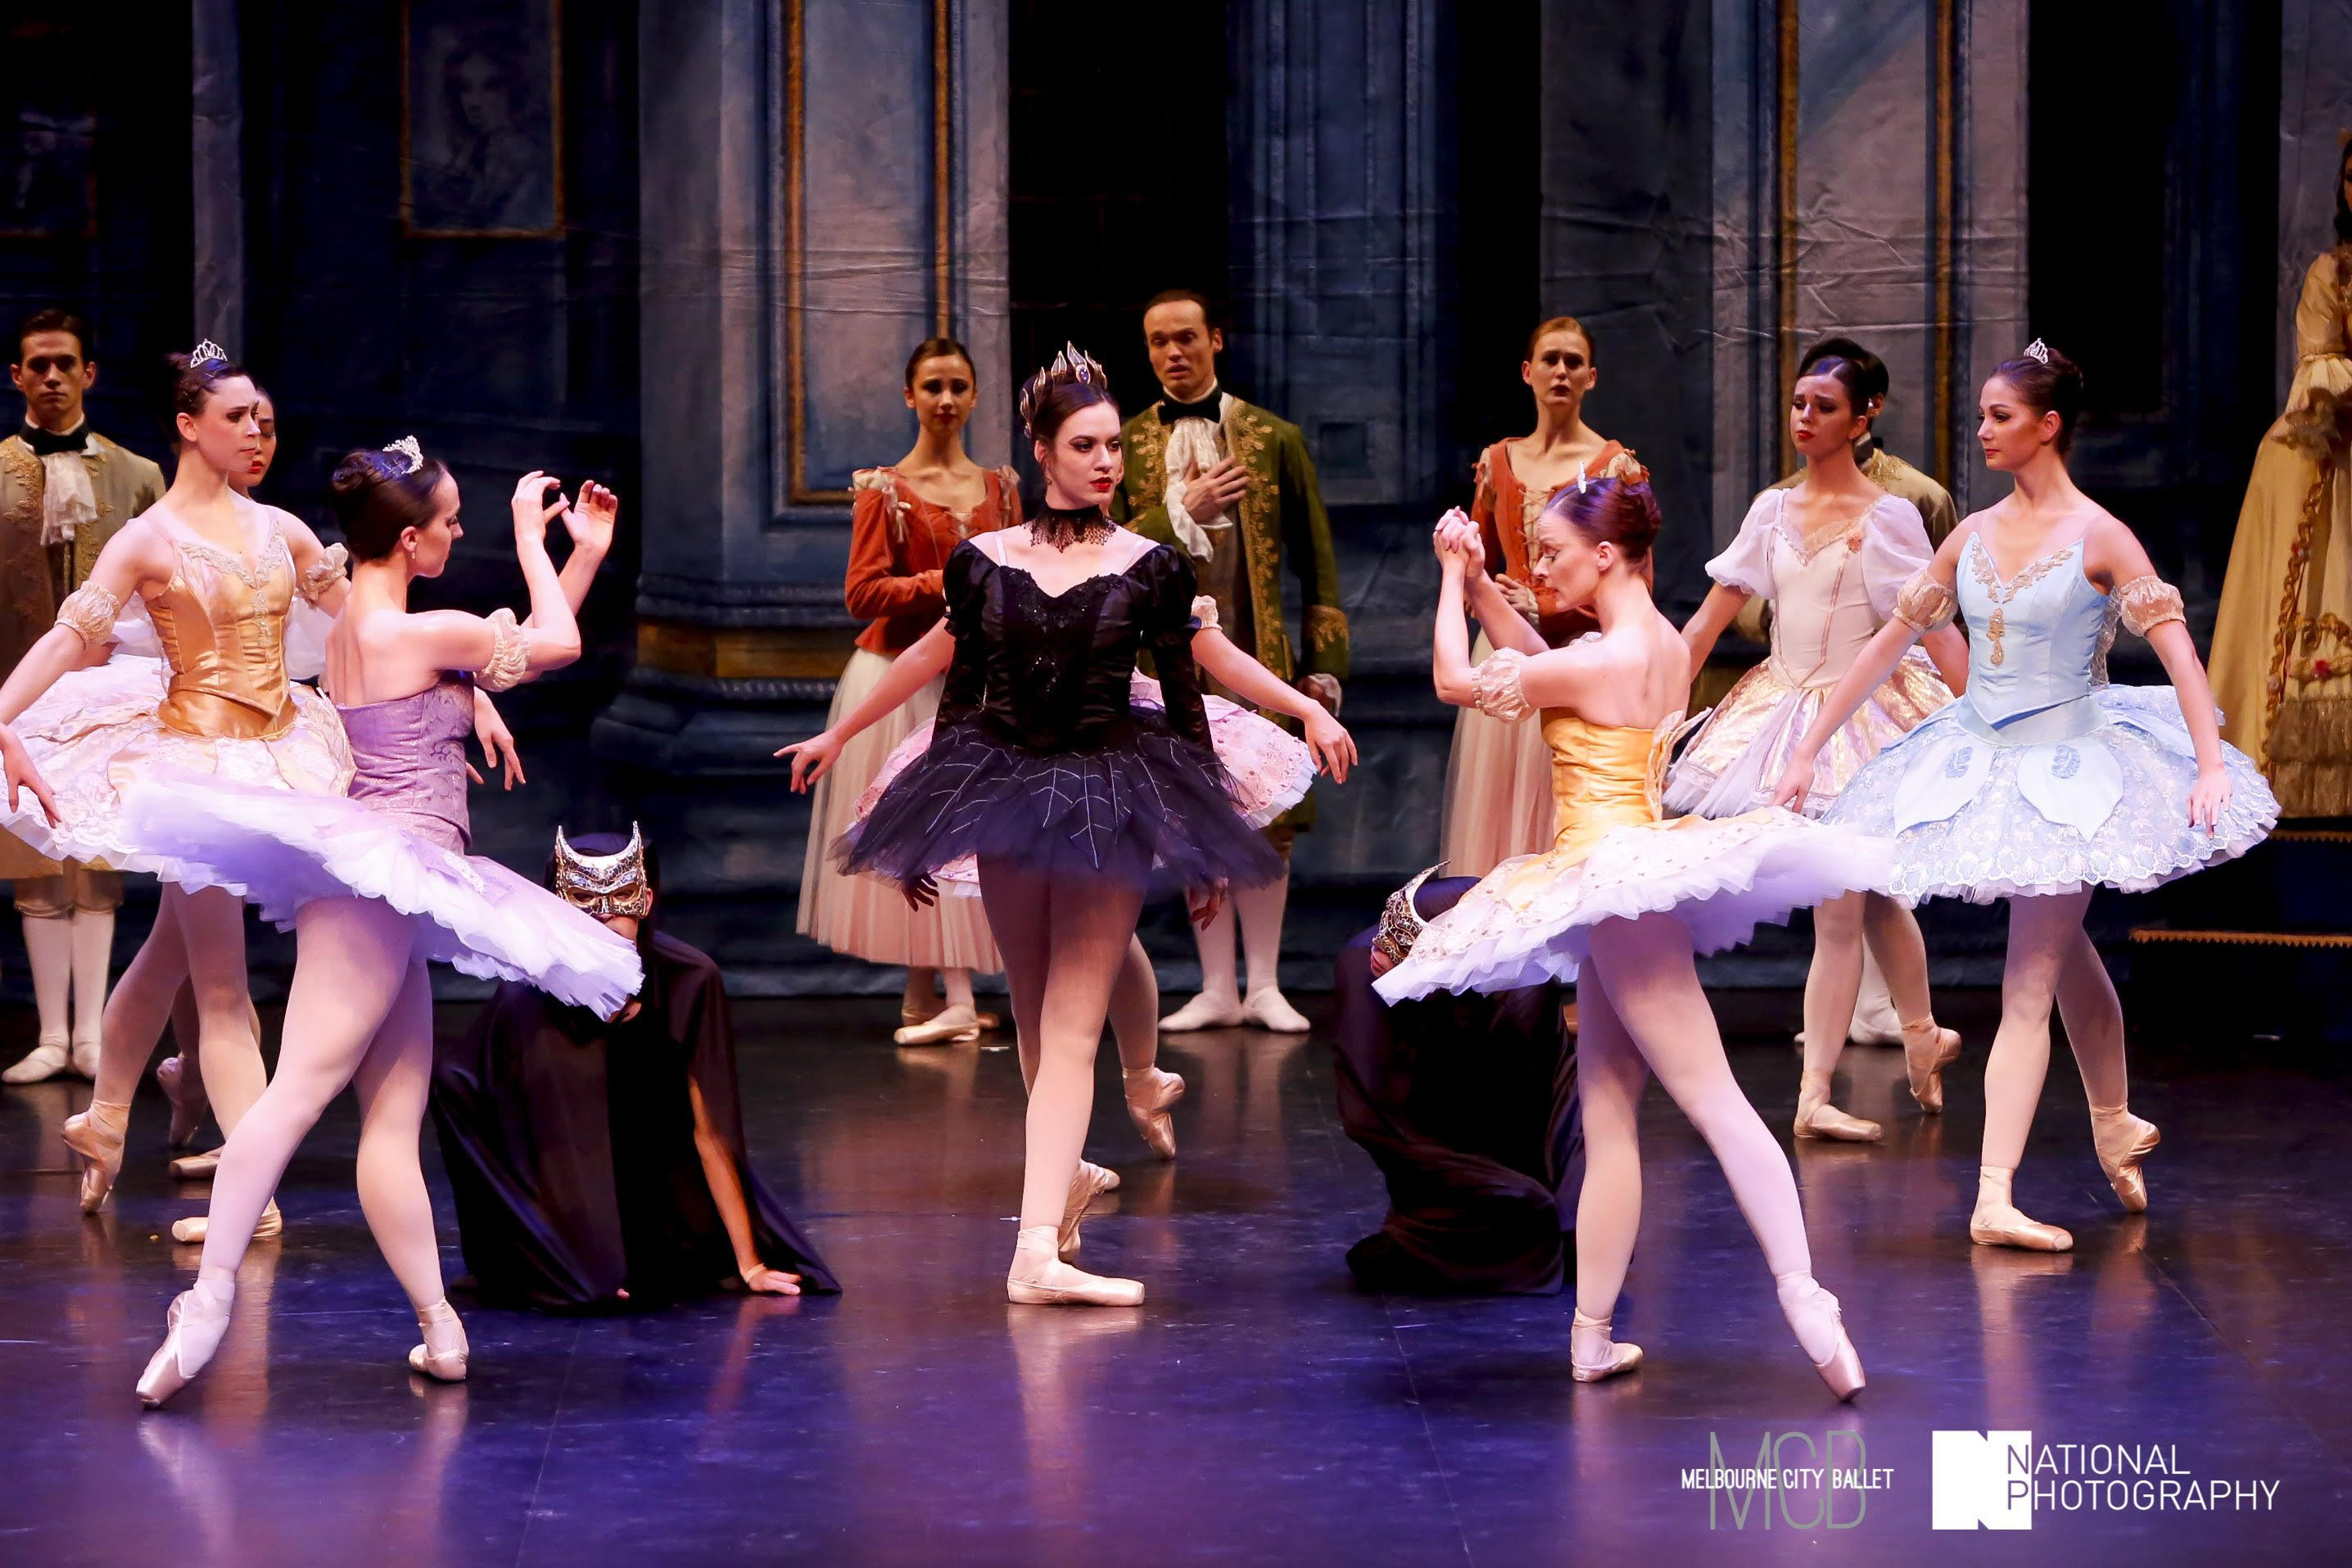 Melbourne City Ballet Presents Sleeping Beauty